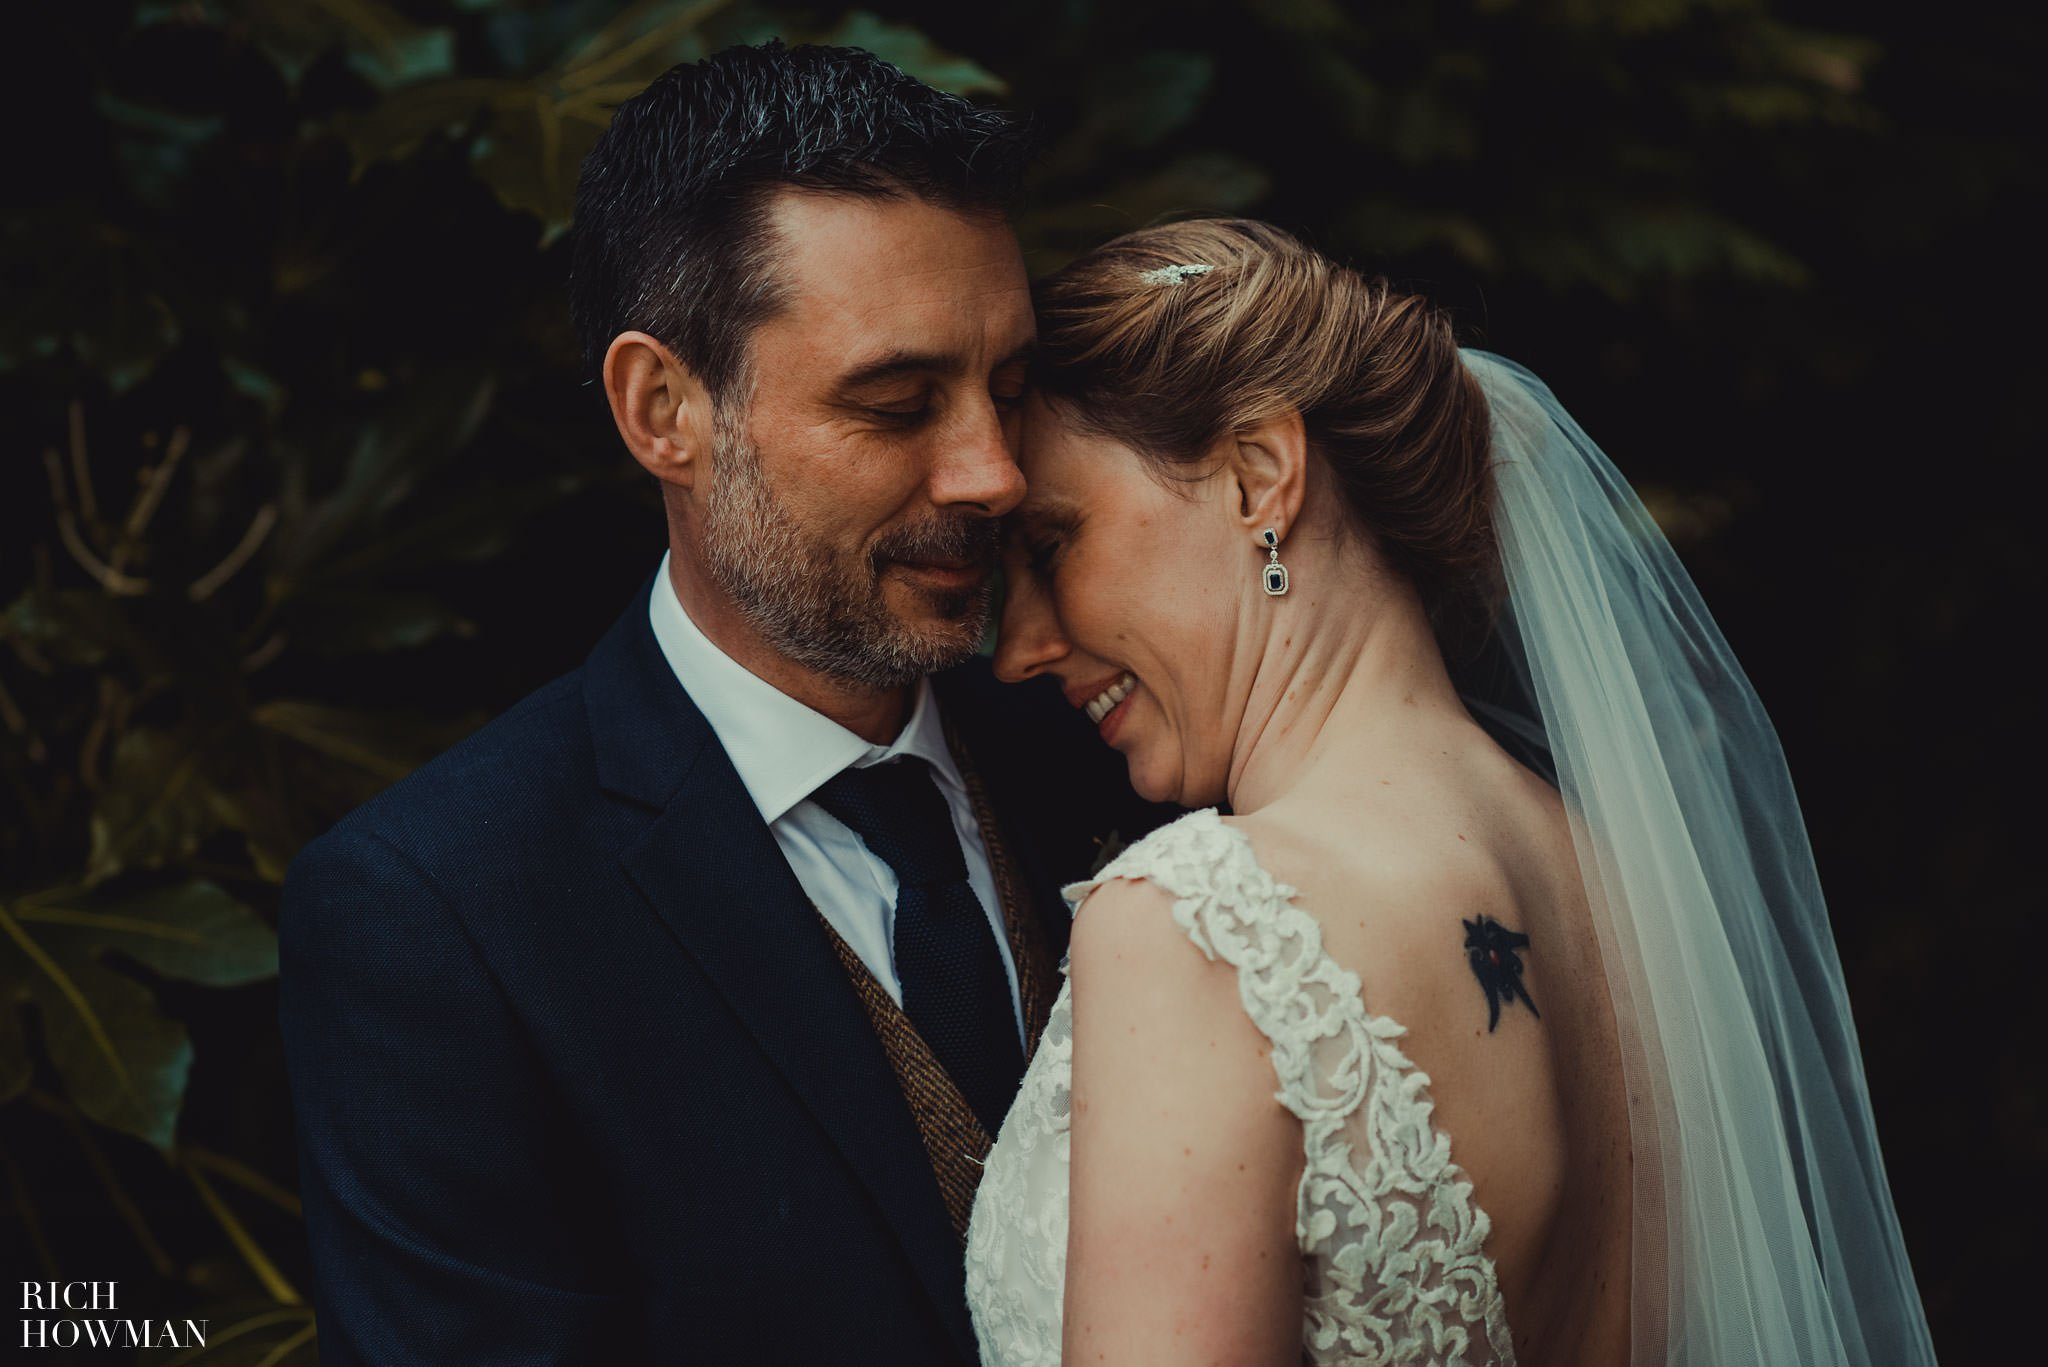 Wedding at Pennard House photographed by Rich Howman Wedding Photographer at Pennard House